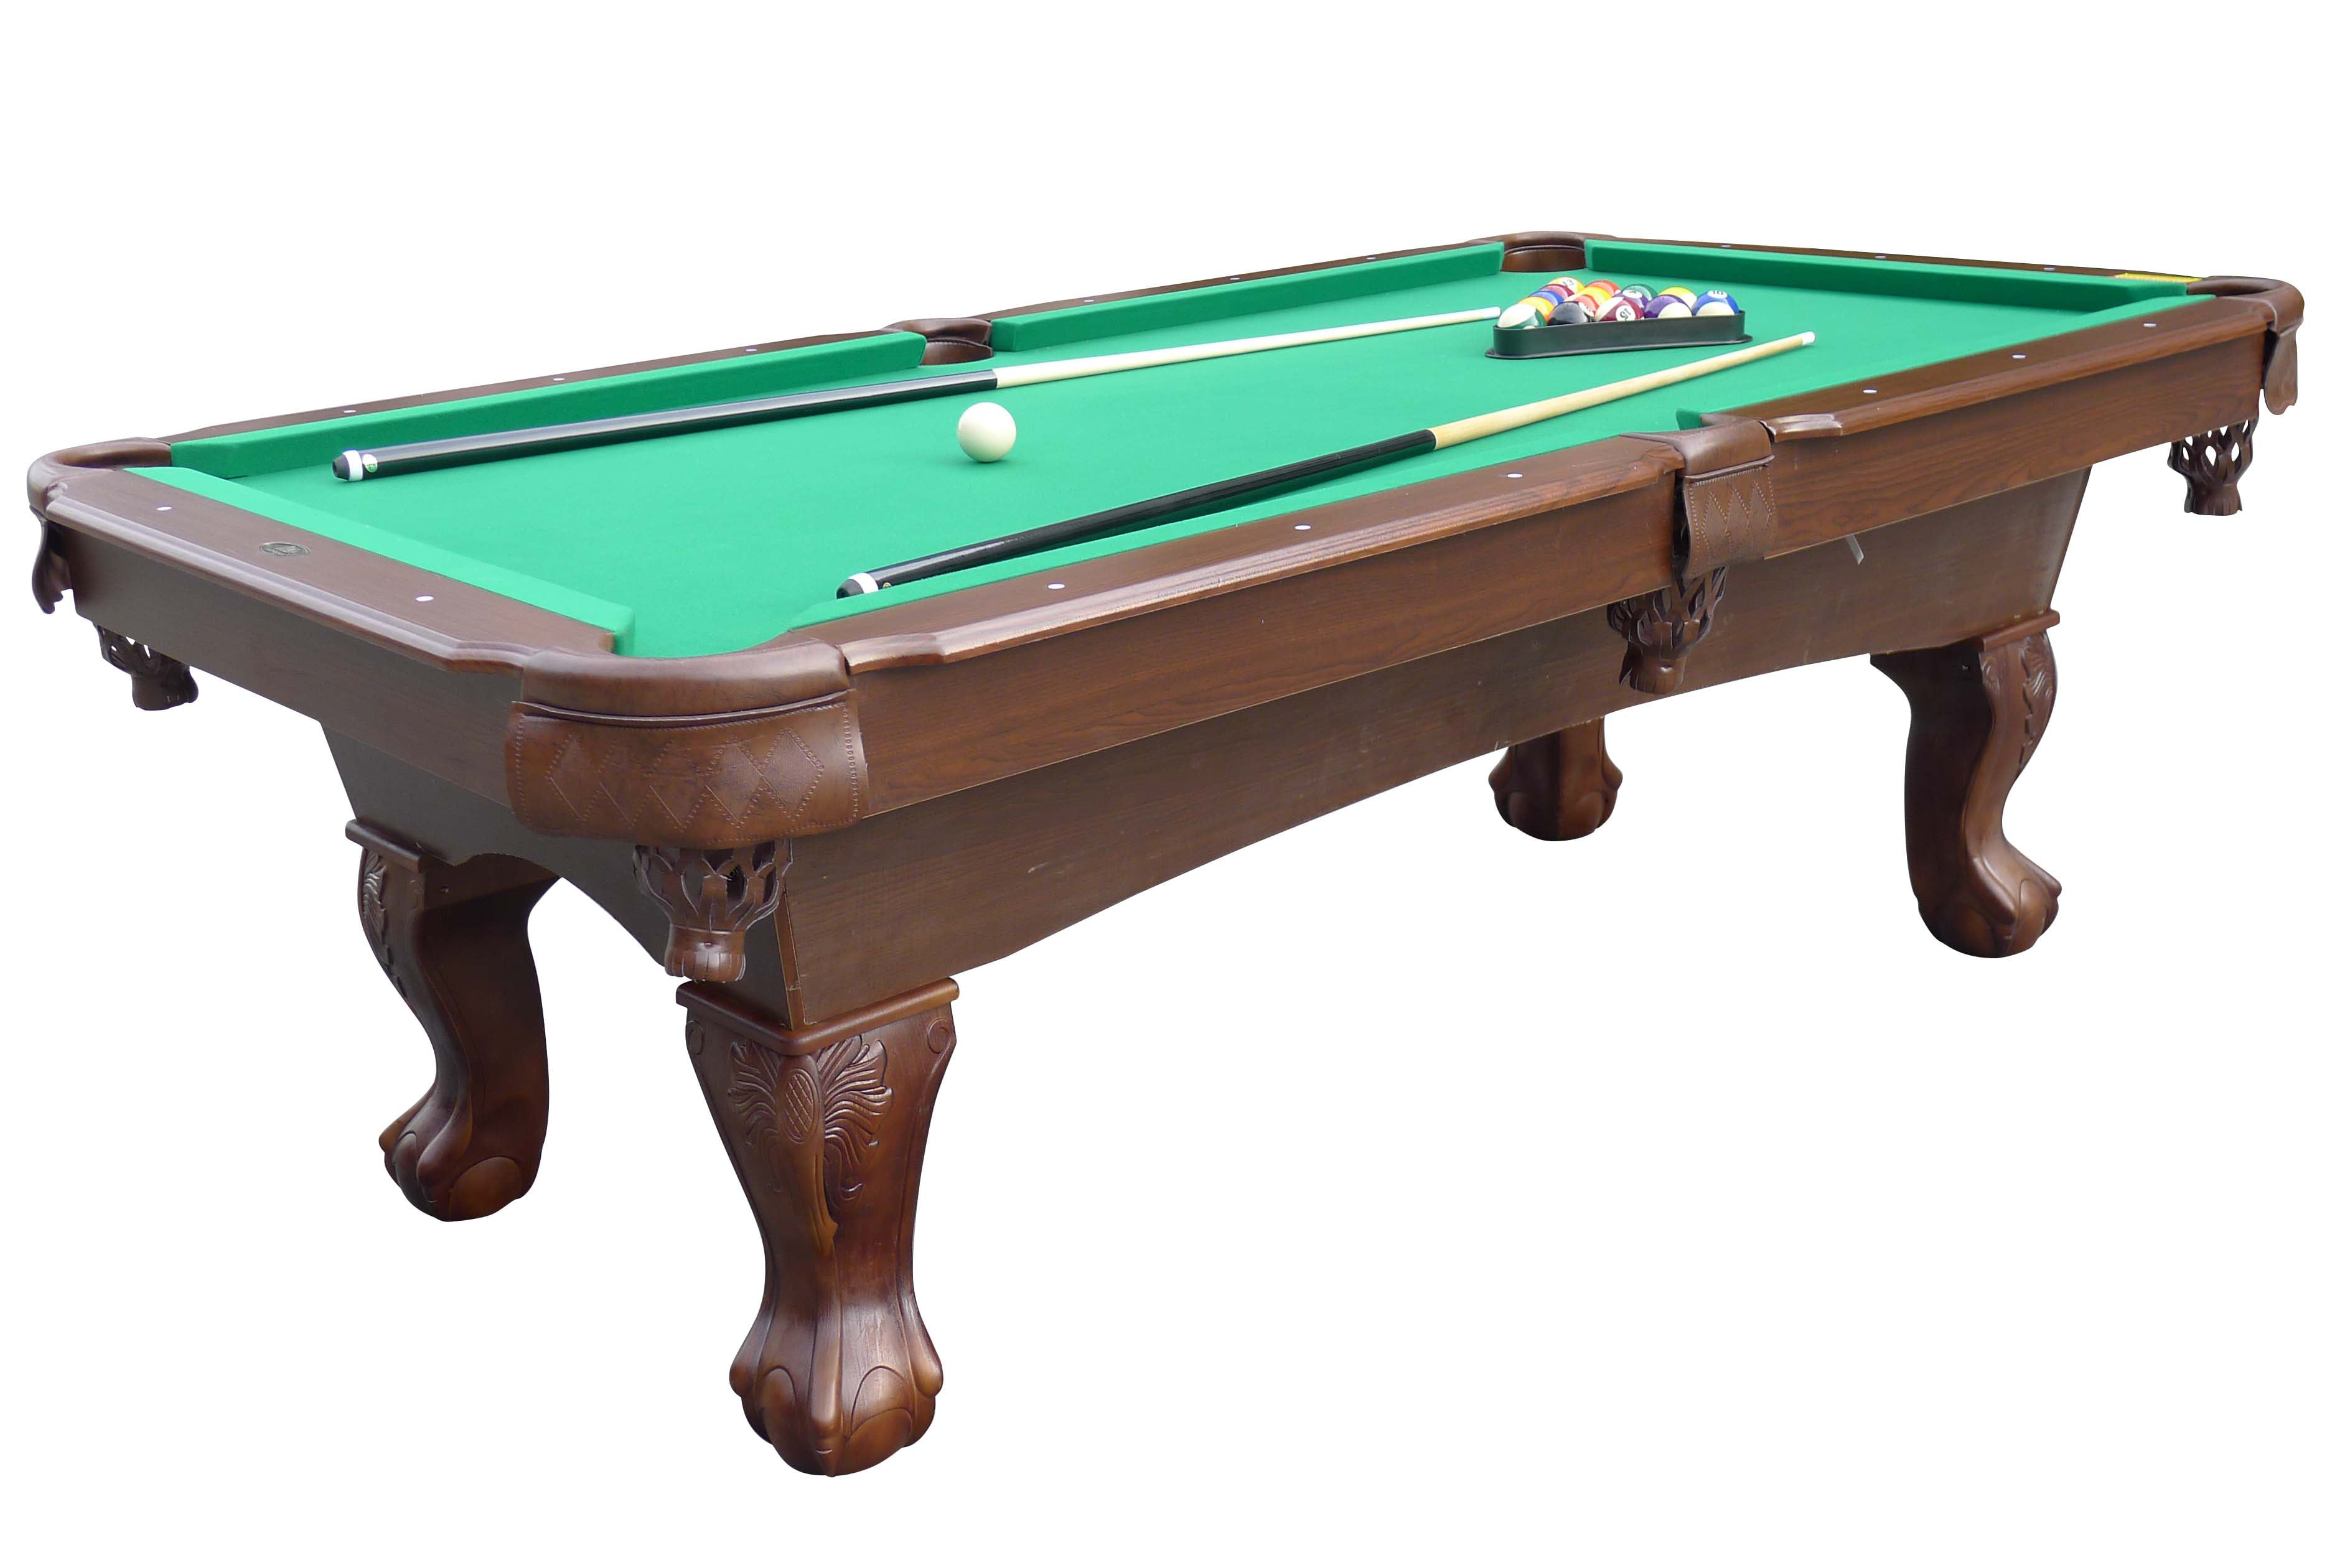 Medal Sports Springdale Ft Billiard Pool Table With Cue Set - Pool table stores in maryland